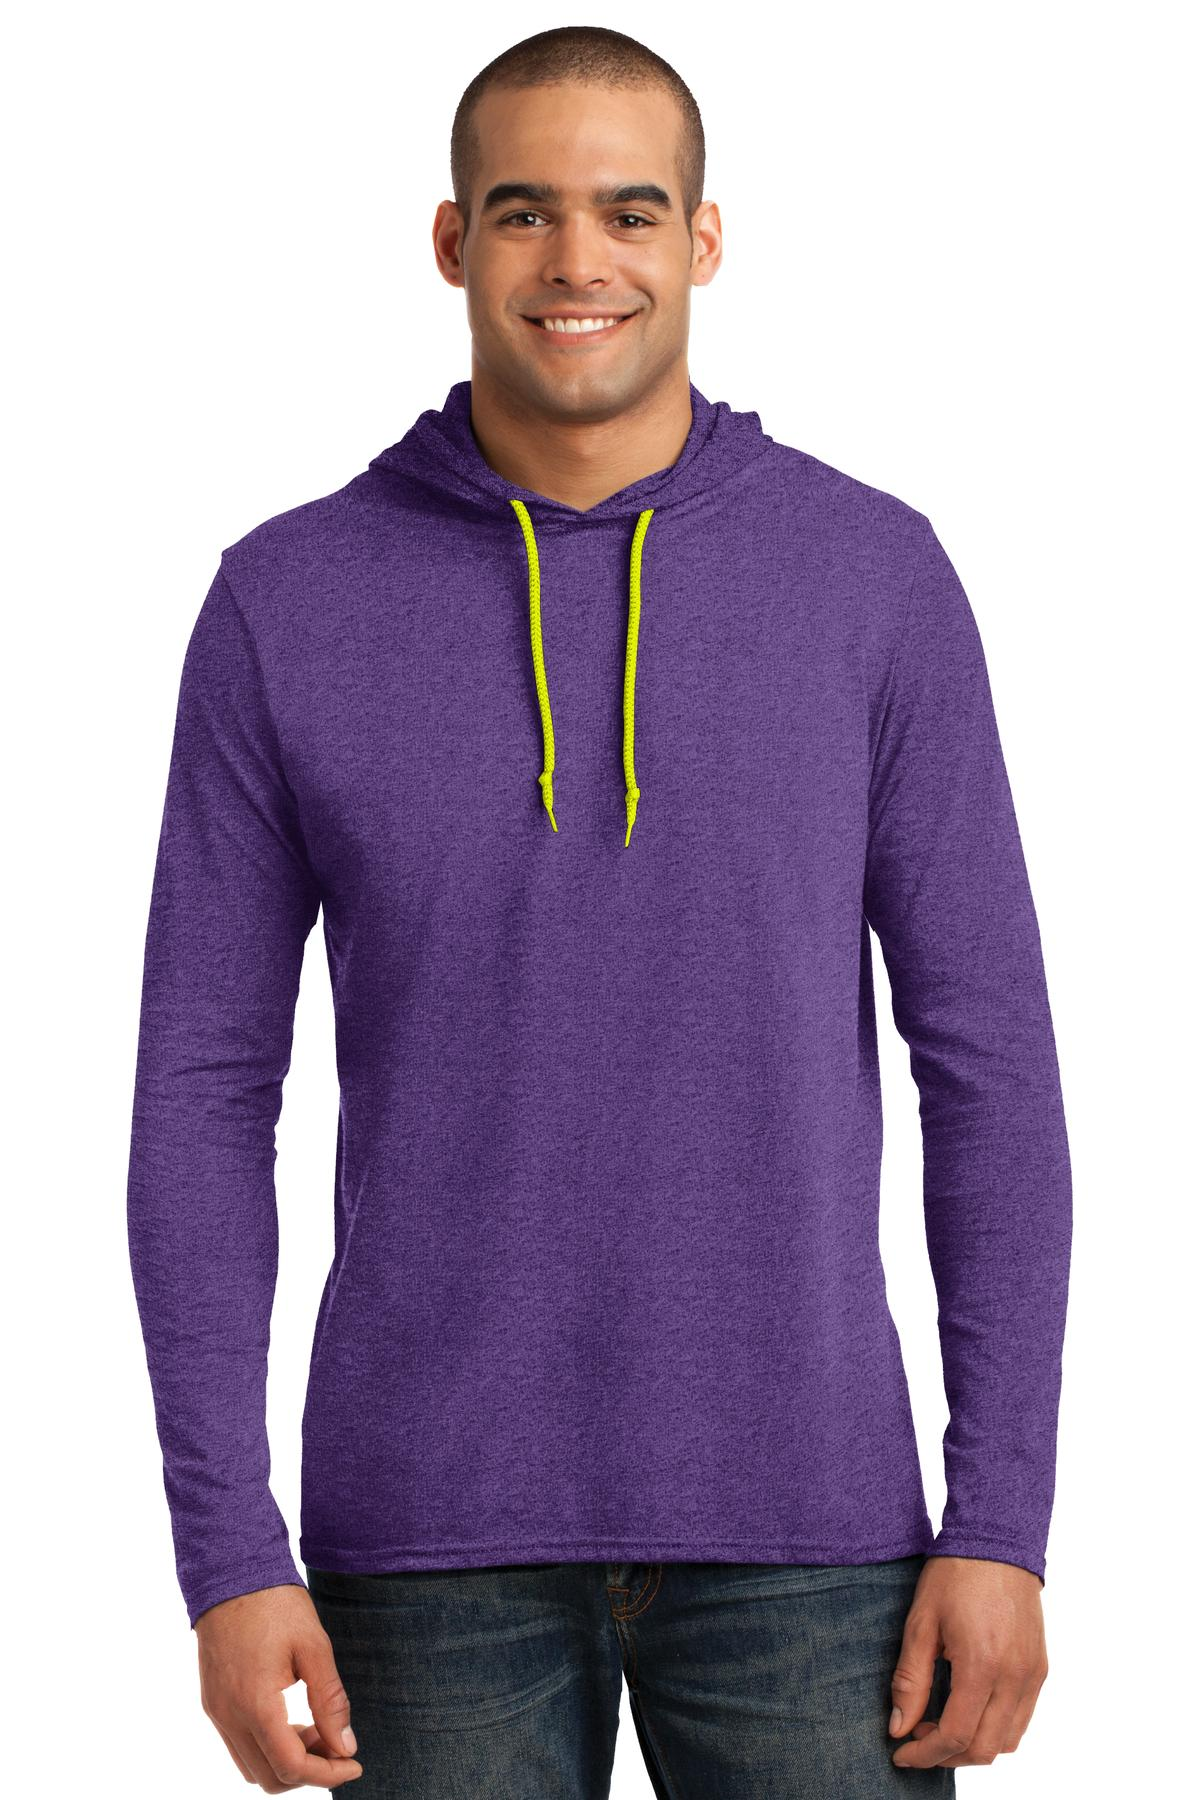 Anvil ®  100% Combed Ring Spun Cotton Long Sleeve Hooded T-Shirt. 987 - Heather Purple/ Neon Yellow